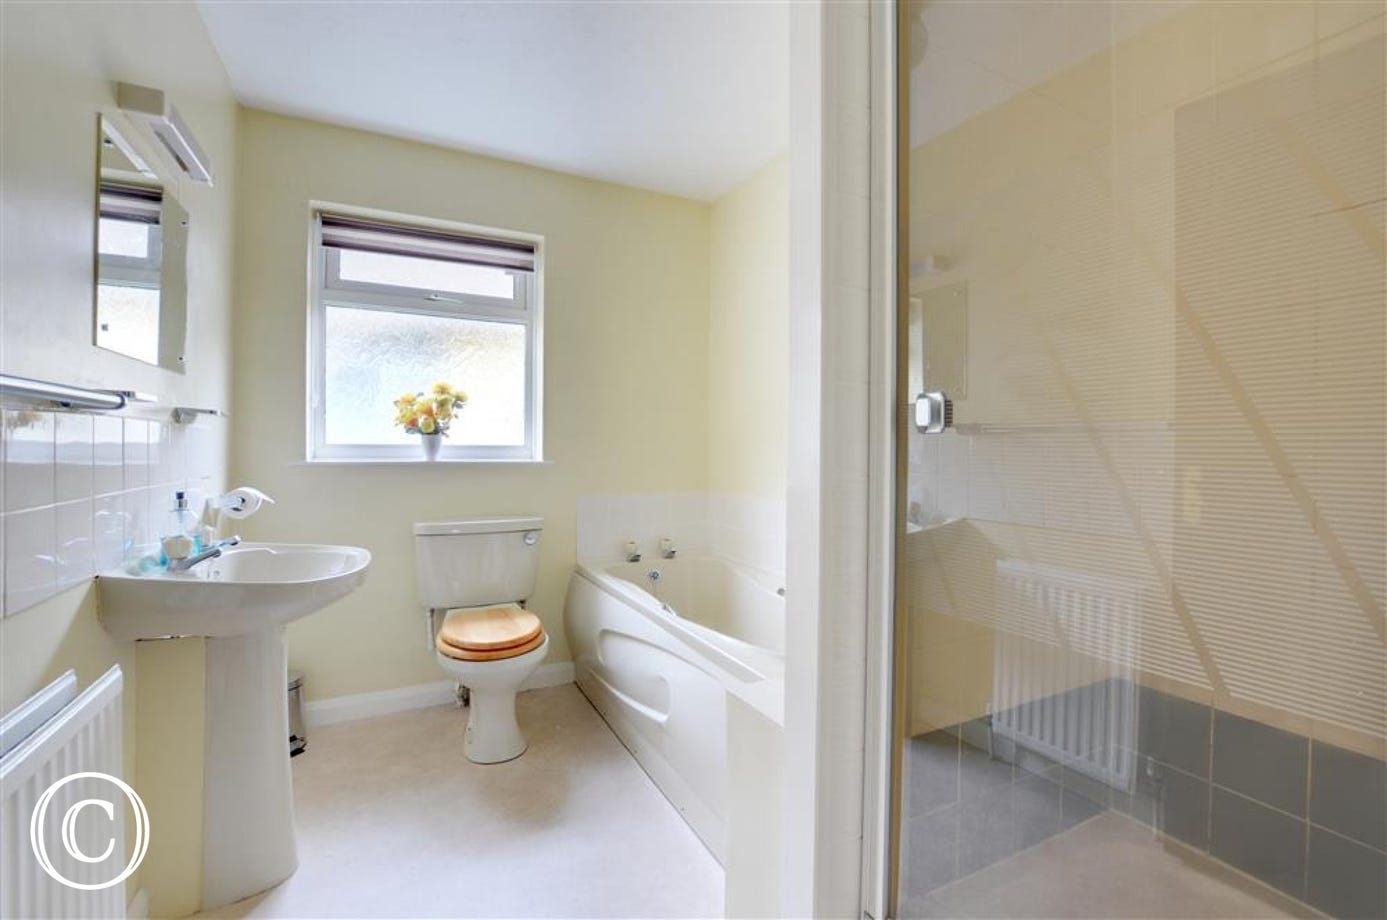 Bathroom with separate bath and shower cubicle